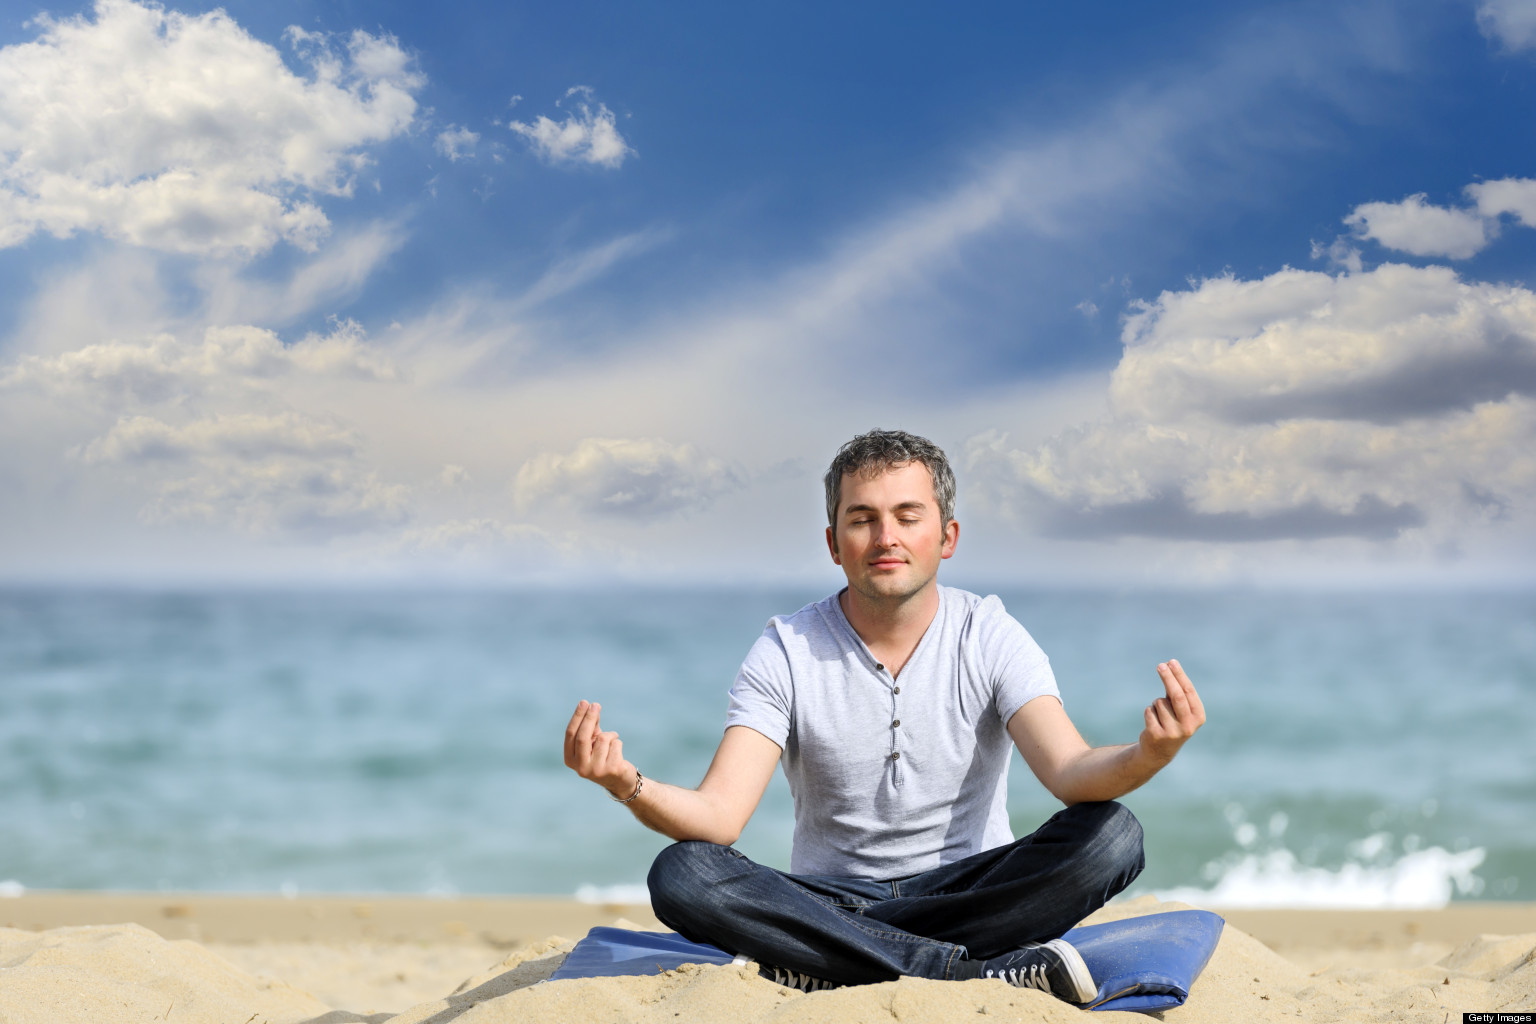 Mindfulness: The Juicy Stuff Beyond the Hype